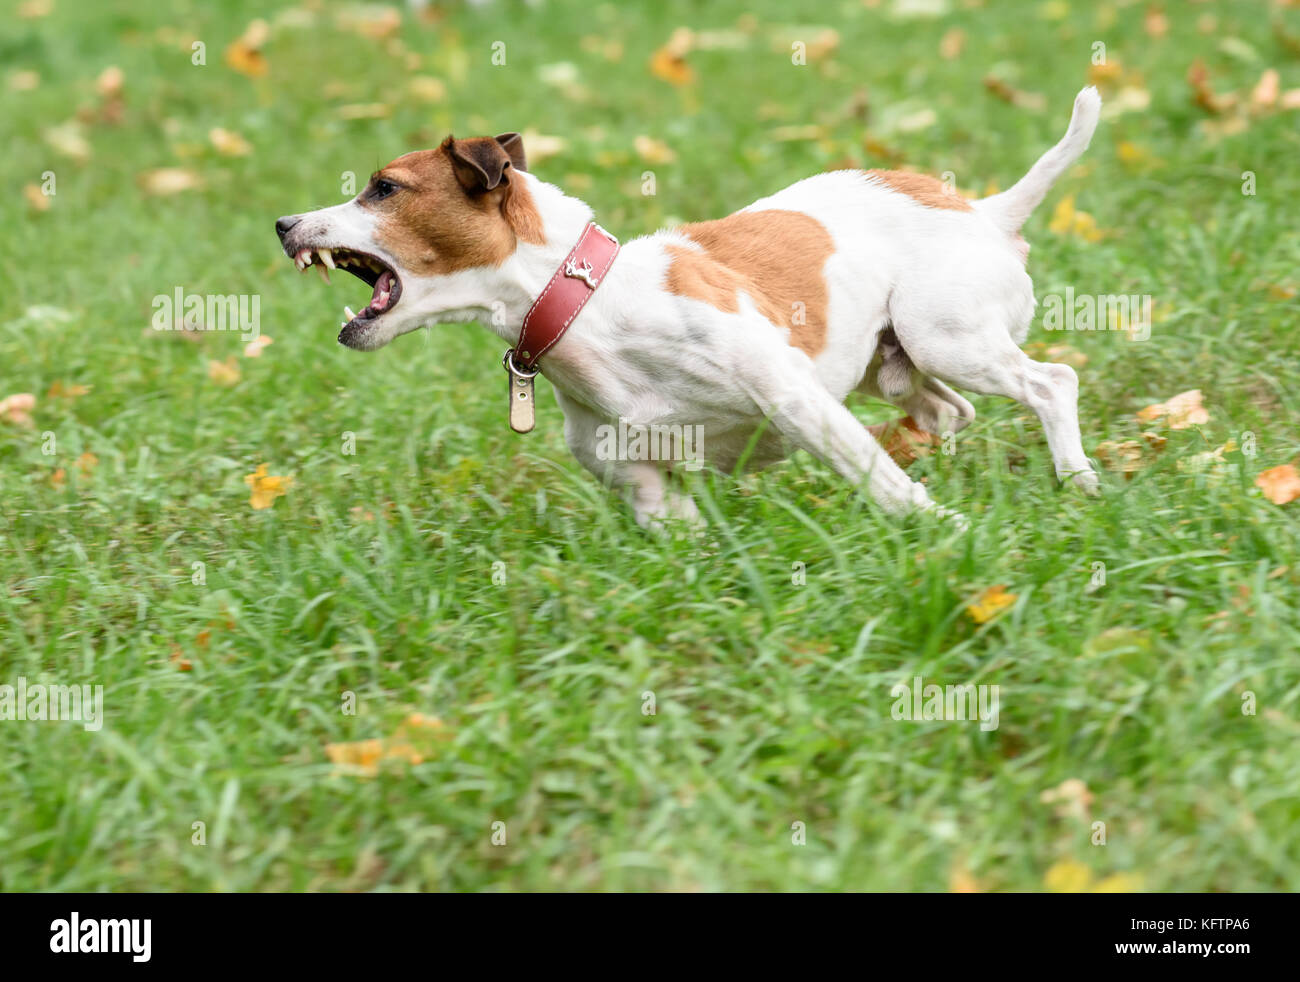 Angry barking dog running on grass - Stock Image